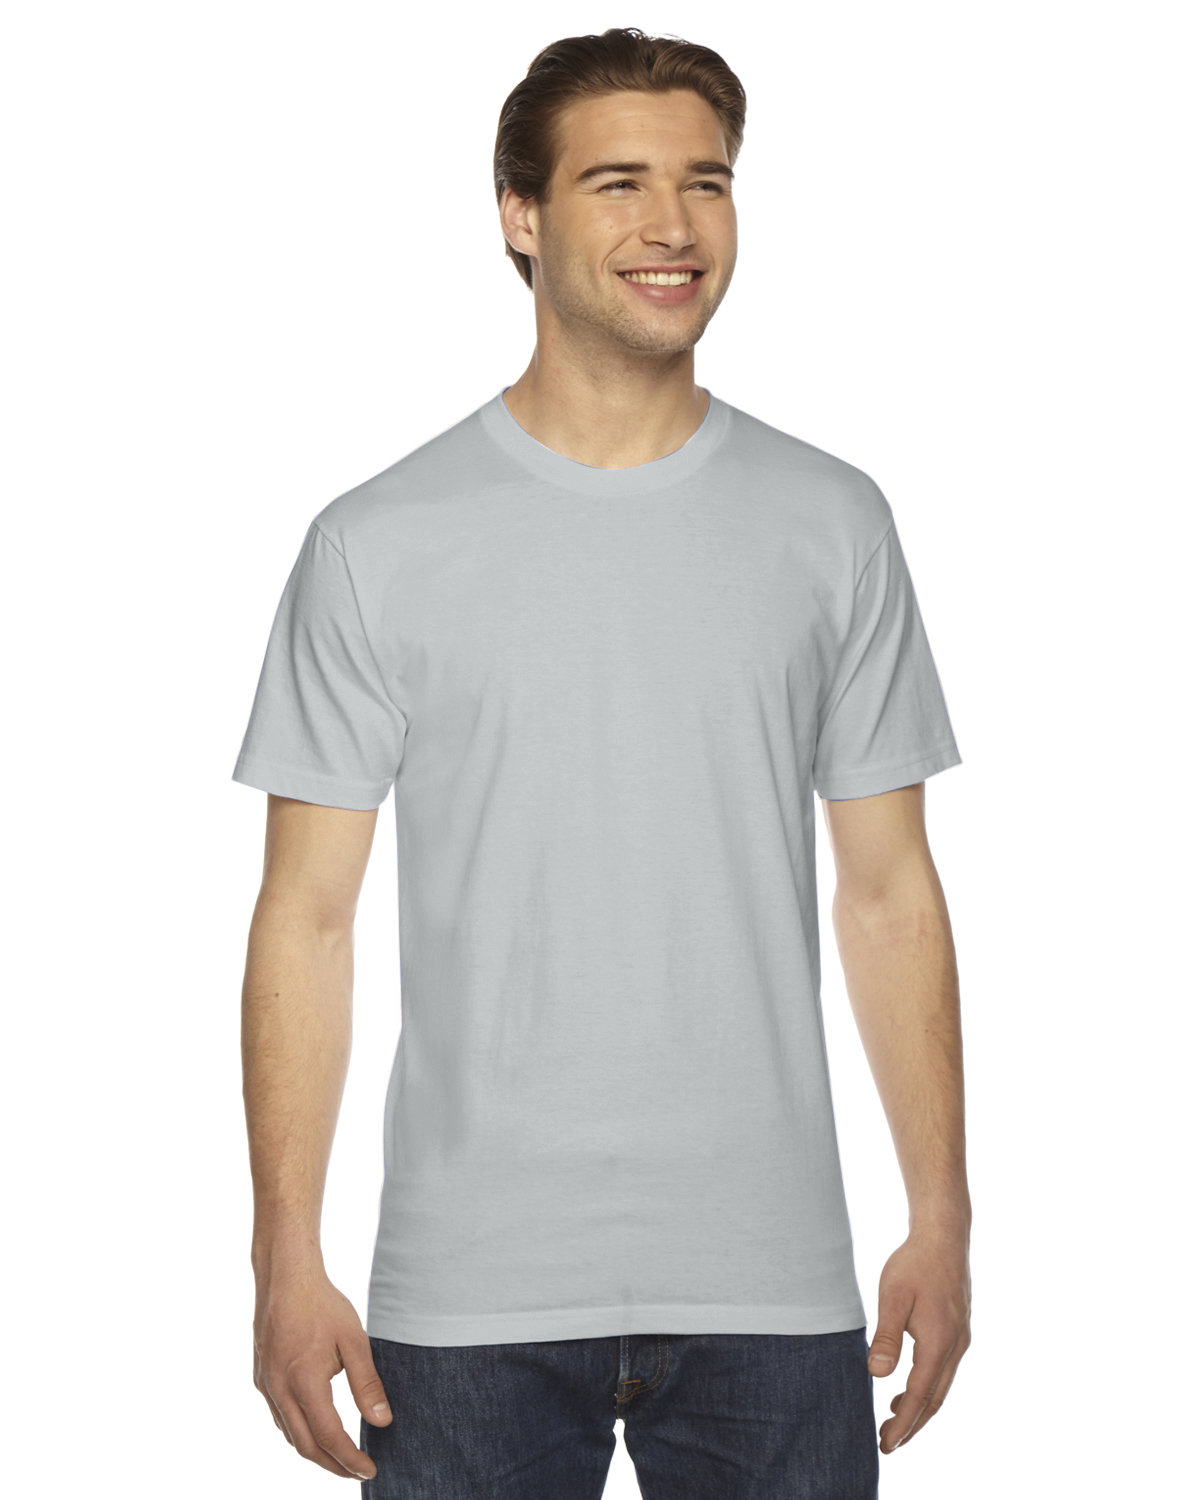 American Apparel Unisex Fine Jersey USA Made T-Shirt NEW SILVER